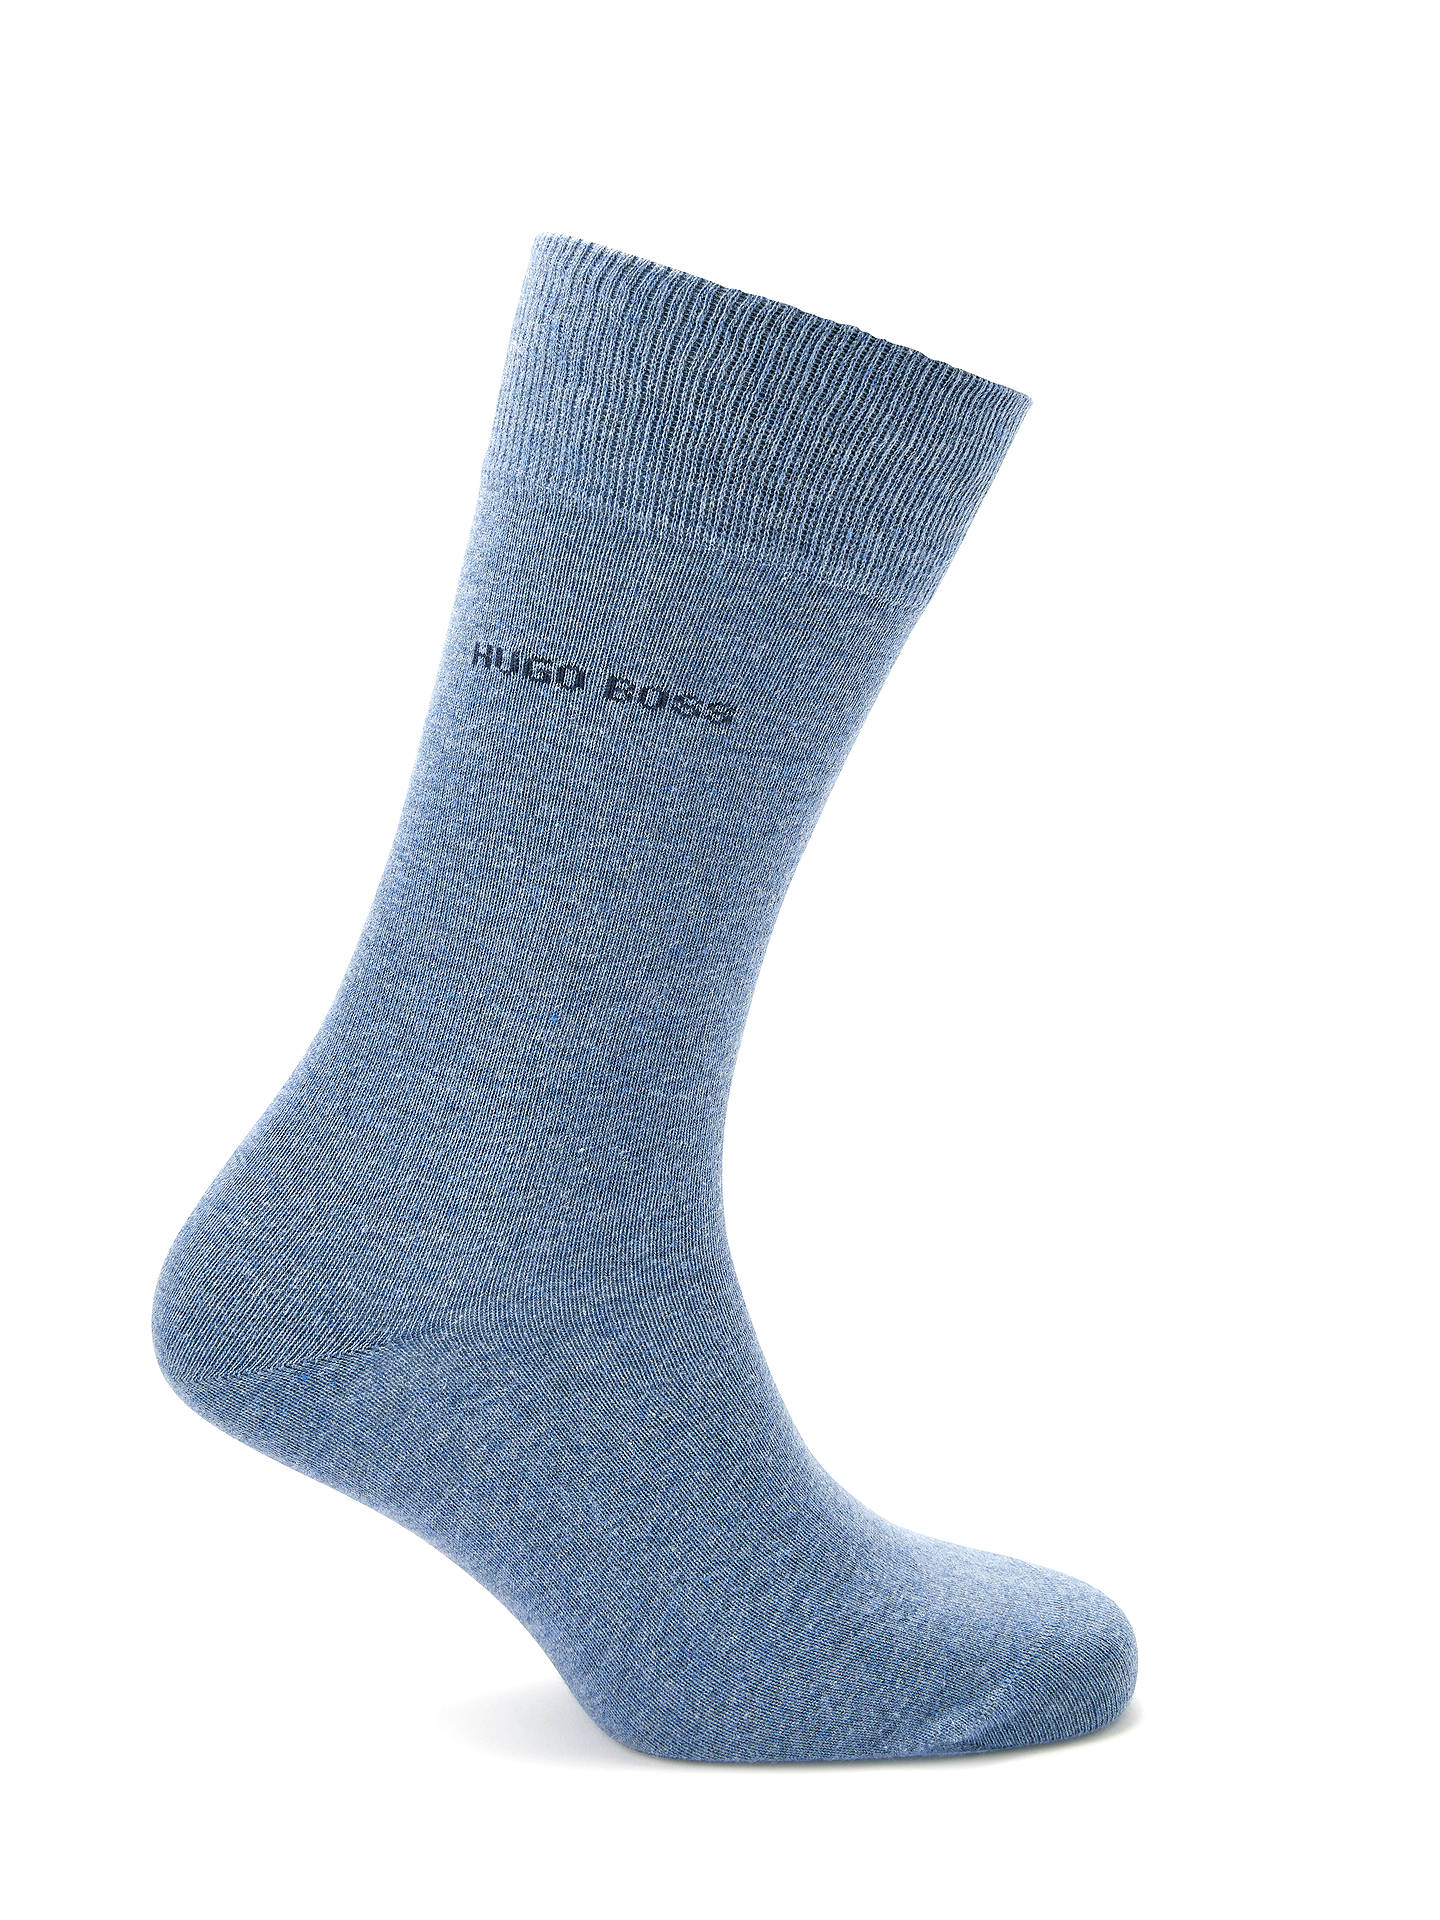 BuyBOSS RS Uni Plain Socks, Pack of 2, Light Blue, S/M Online at johnlewis.com